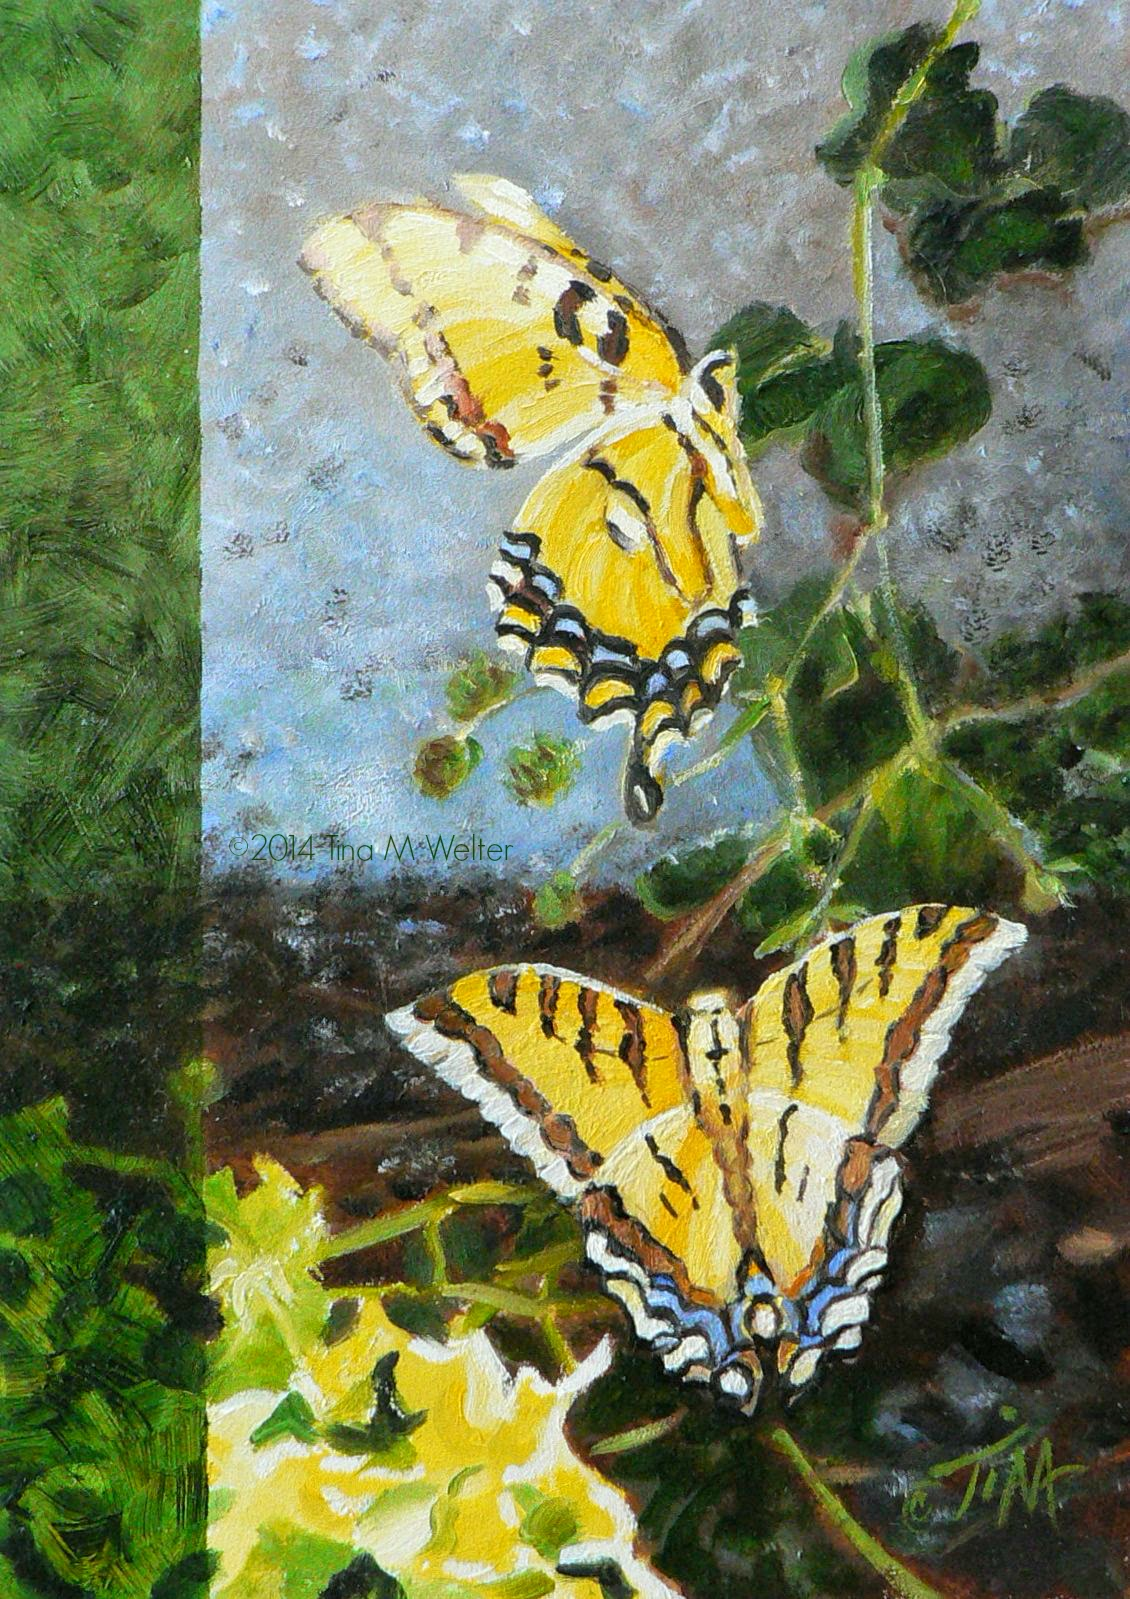 """A Time to Dance"" 7""x 5"" oil on gessobord, ©2014 Tina M Welter.  Two Swallowtail butterflies dance in the sunshine."